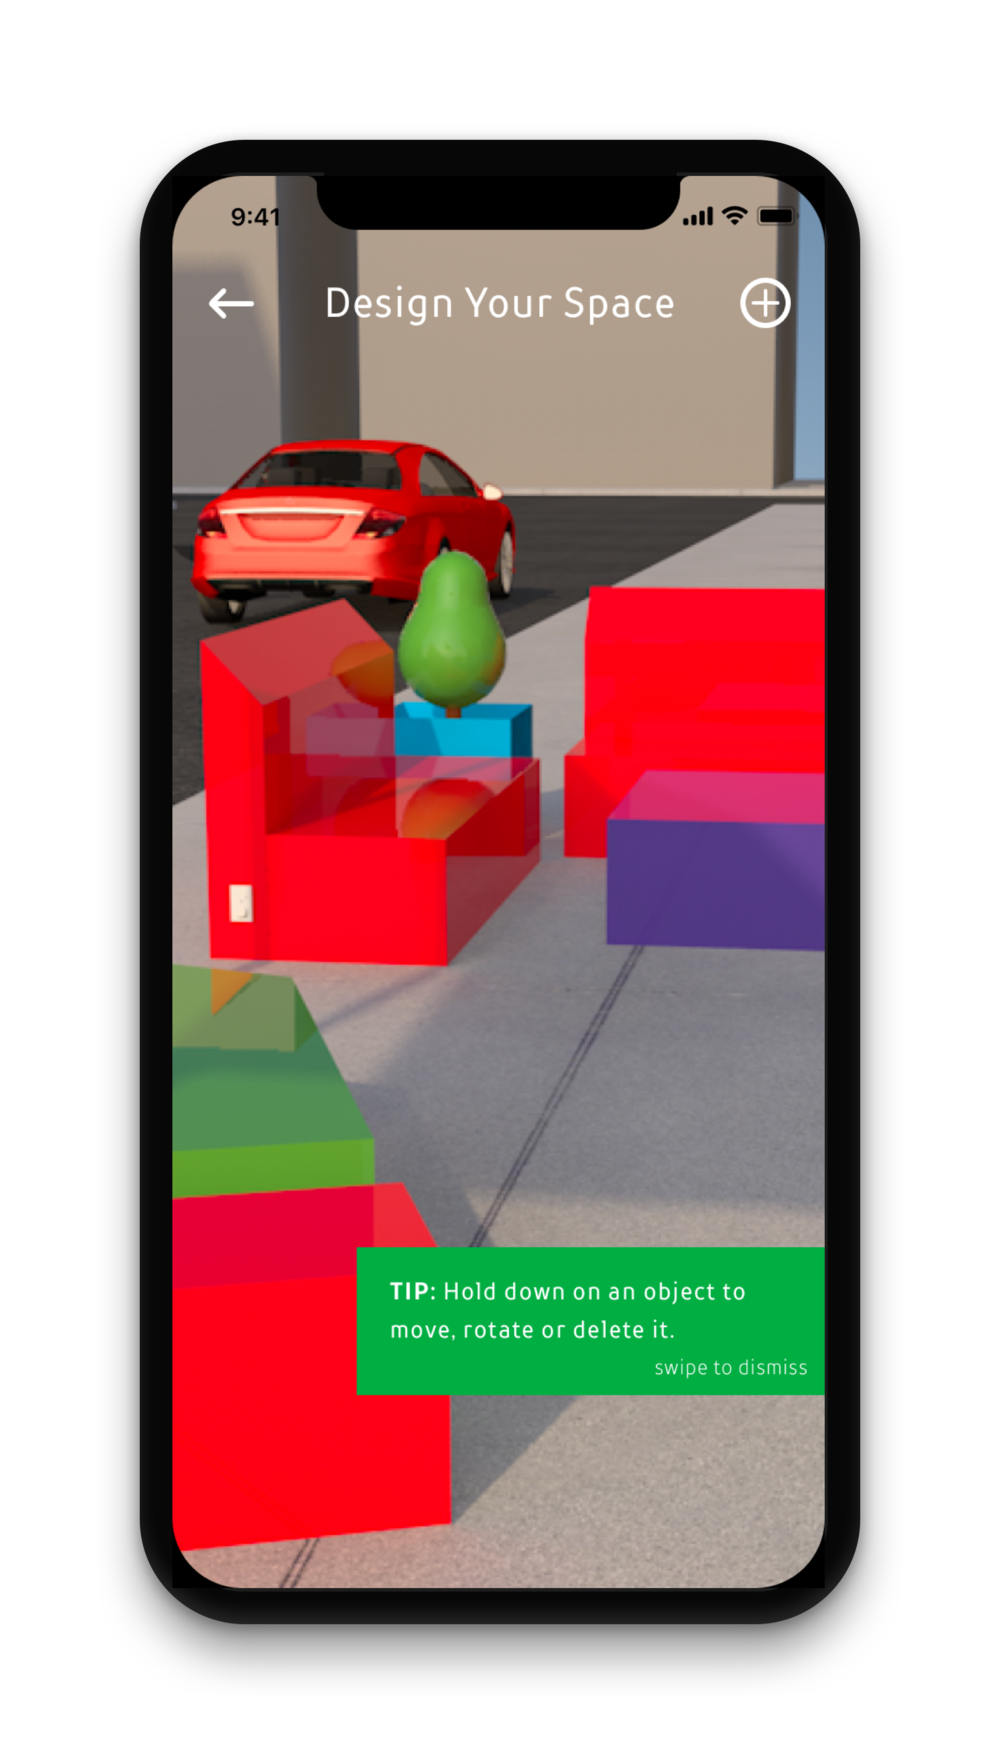 Users design their spaces in real time using augmented reality.